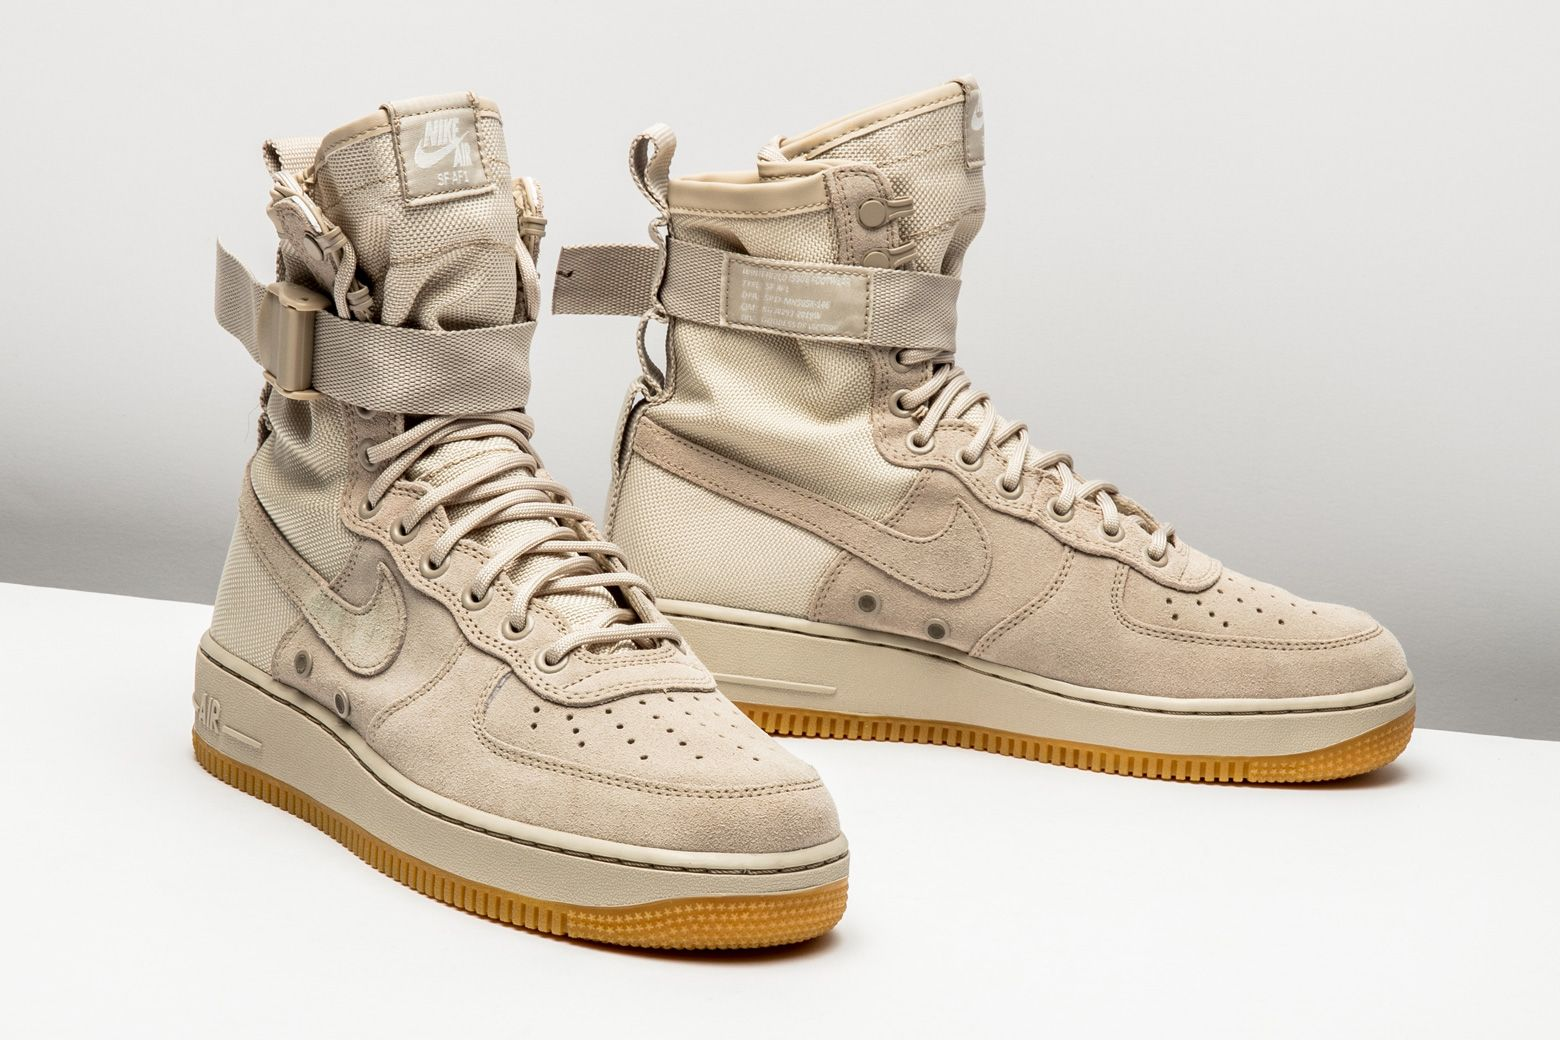 Online Nike Air Force 1 High Military